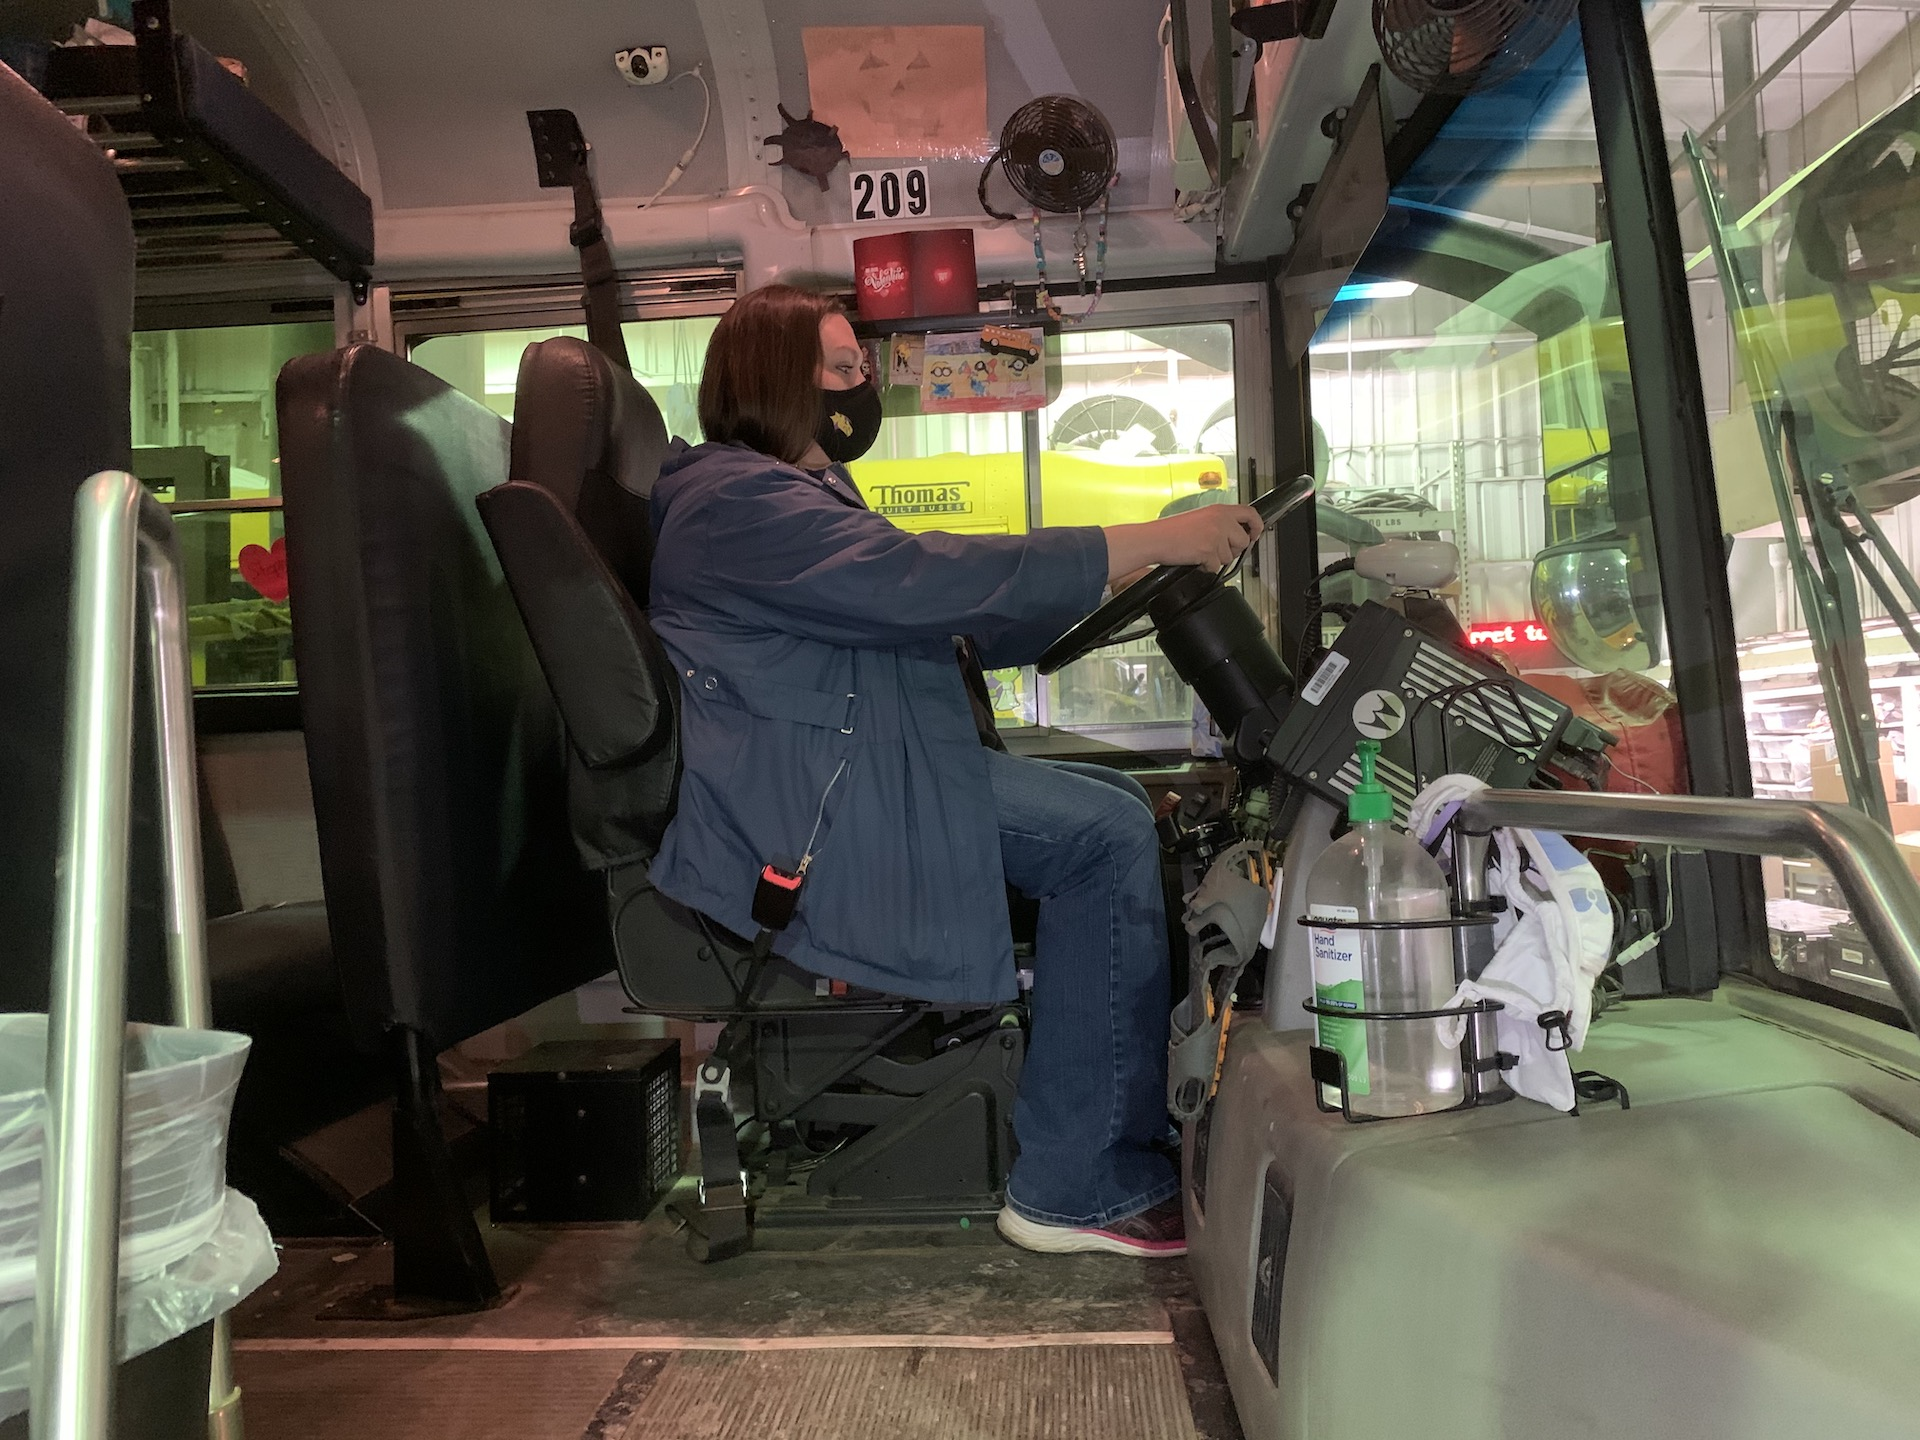 School Bus Driver Timarie Javier wears a face mask while sitting behind the wheel of a Campbell County School District bus in Gillette, Wyoming. The district started transporting students at the start of the 2020-2021 school year, with safety protocols in place to mitigate COVID-19 exposure.